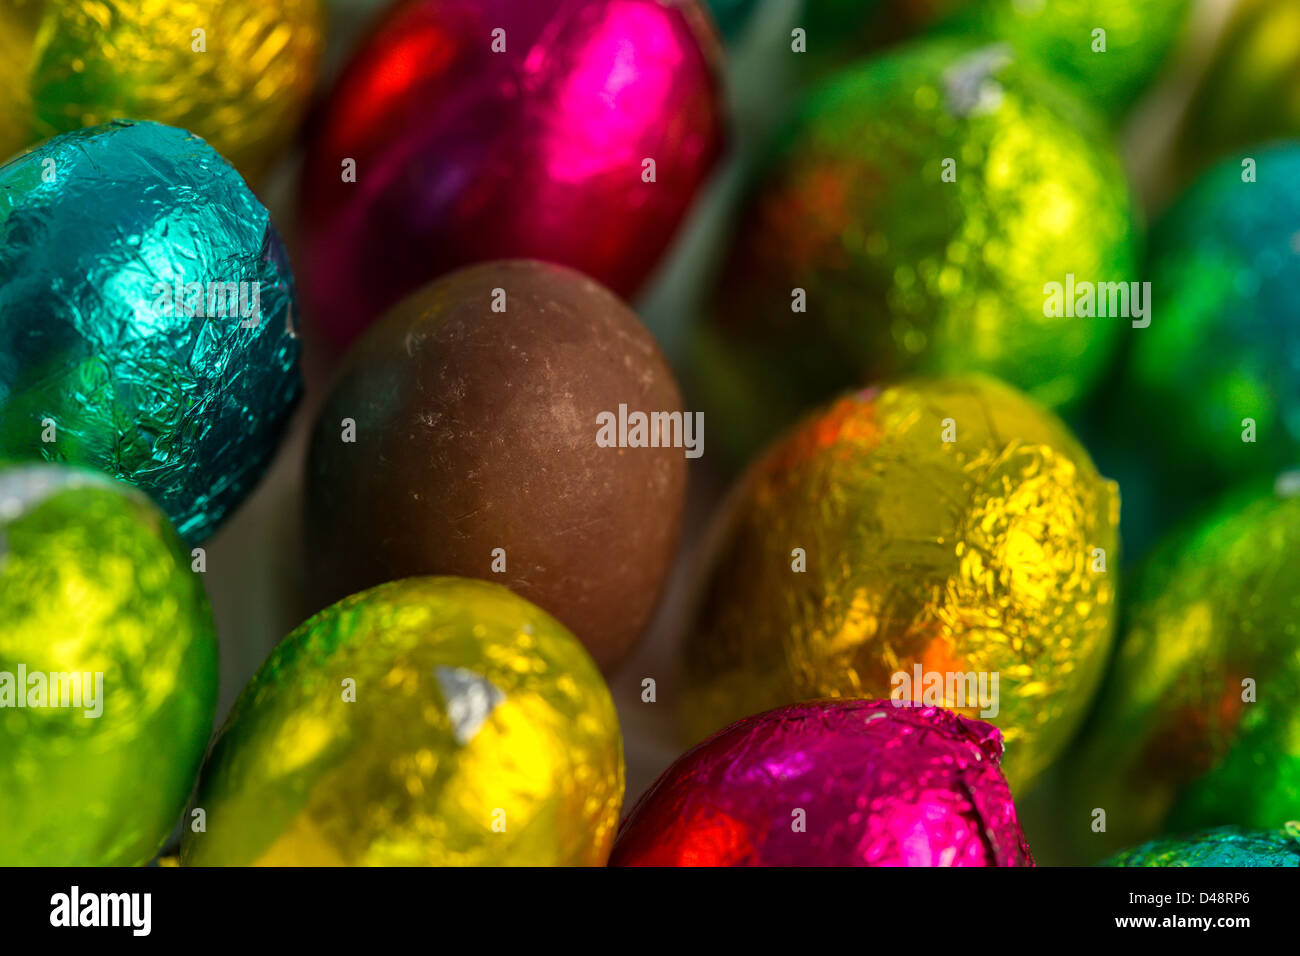 Colourful easter eggs with one unwrapped - Stock Image